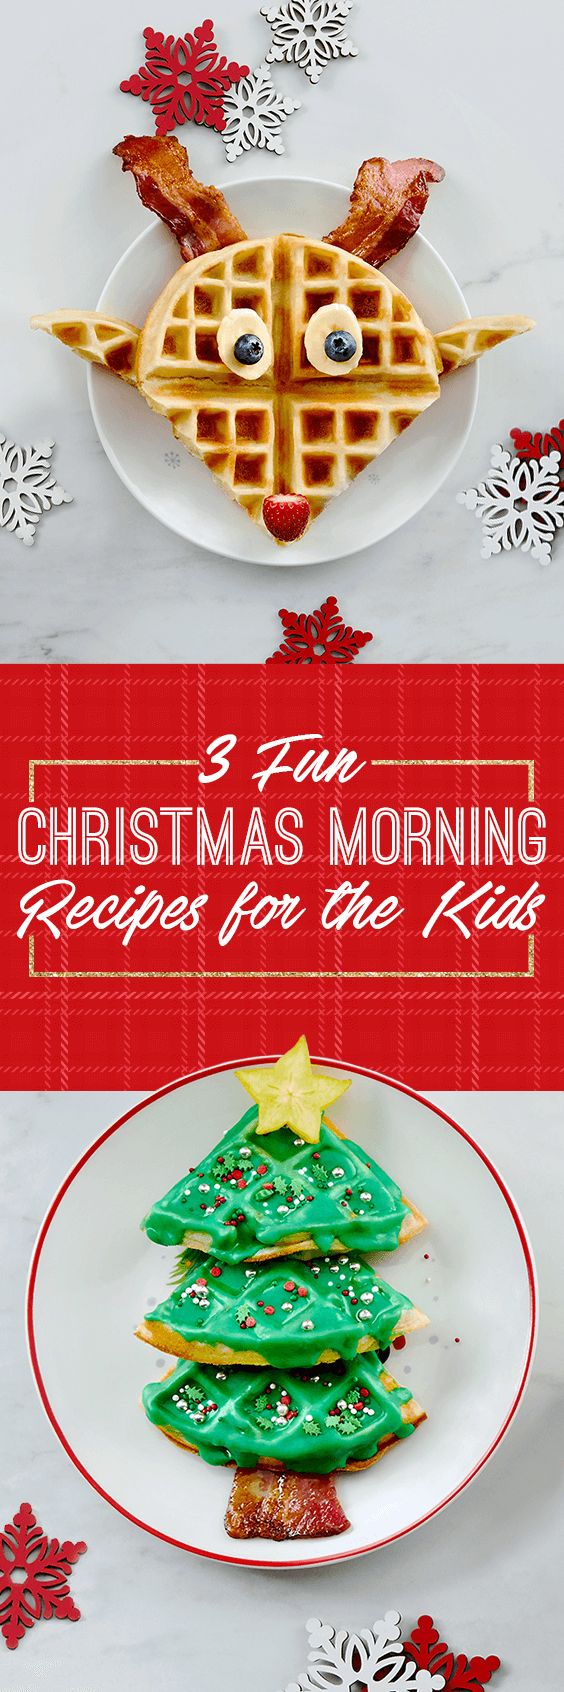 3 Fun Christmas Morning Recipes for the Kids!